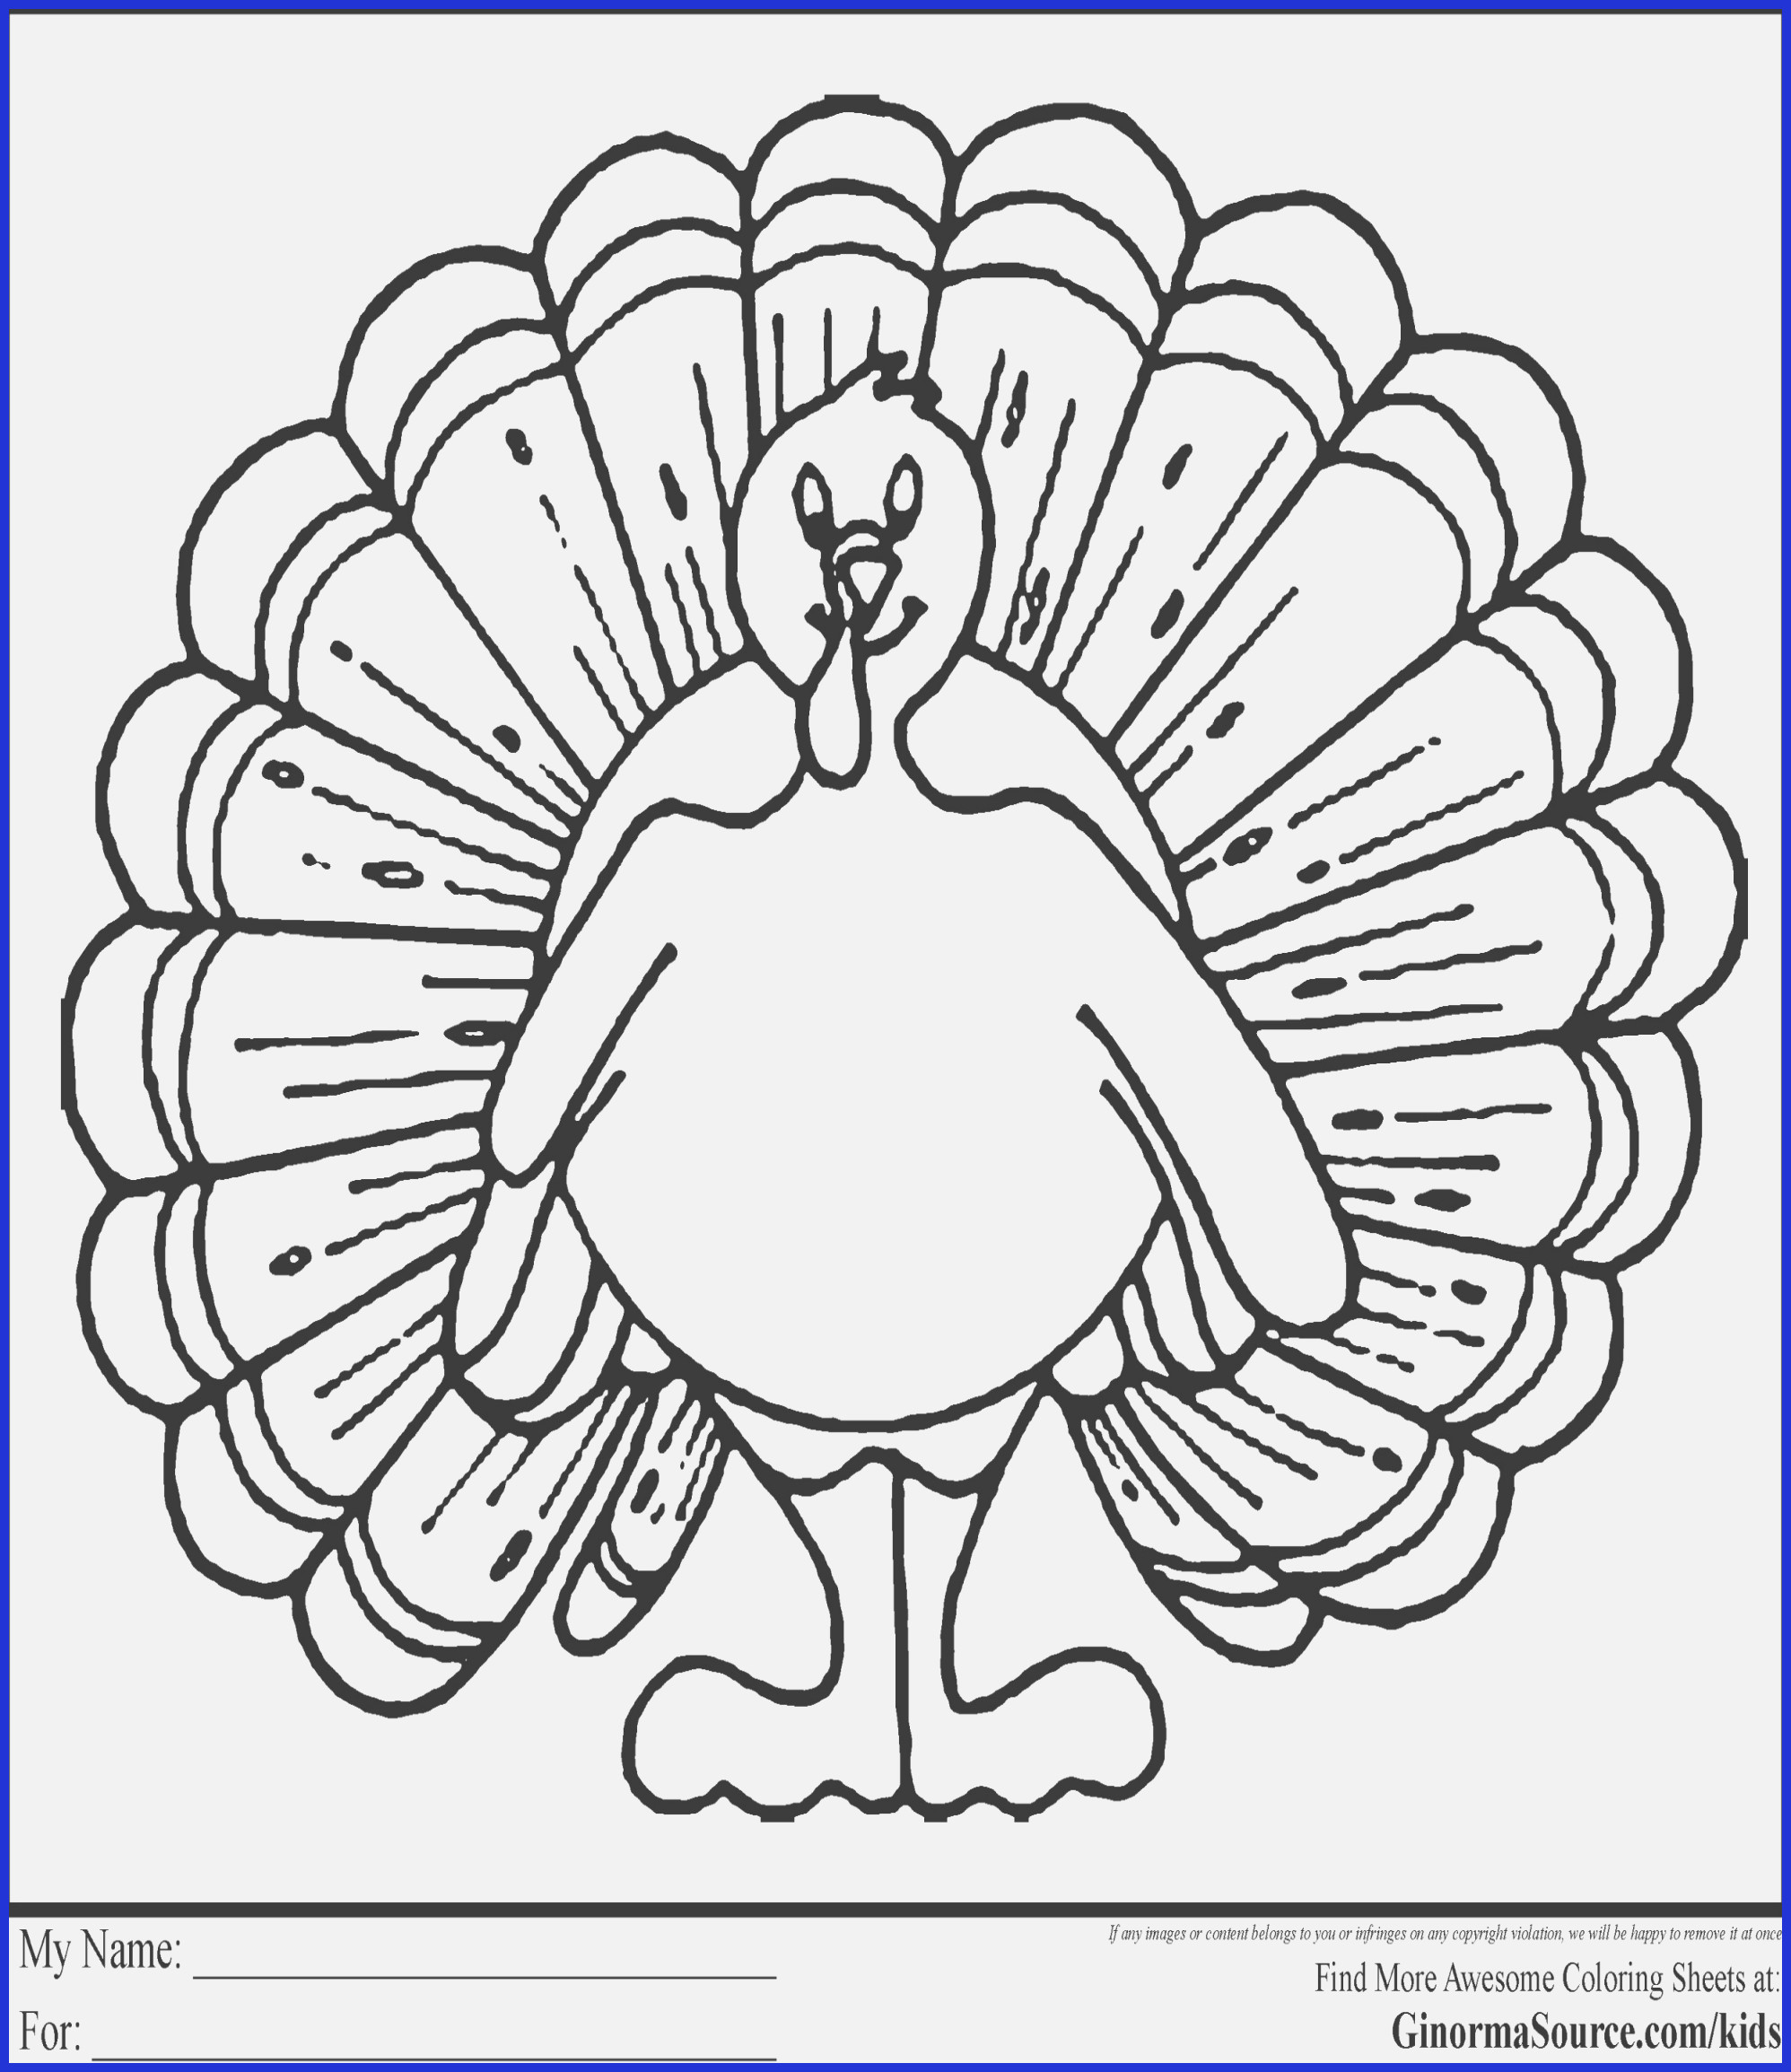 Religious Coloring Pages For Kids Coloring Book Ideas Thanksgiving Coloring Pages Religious